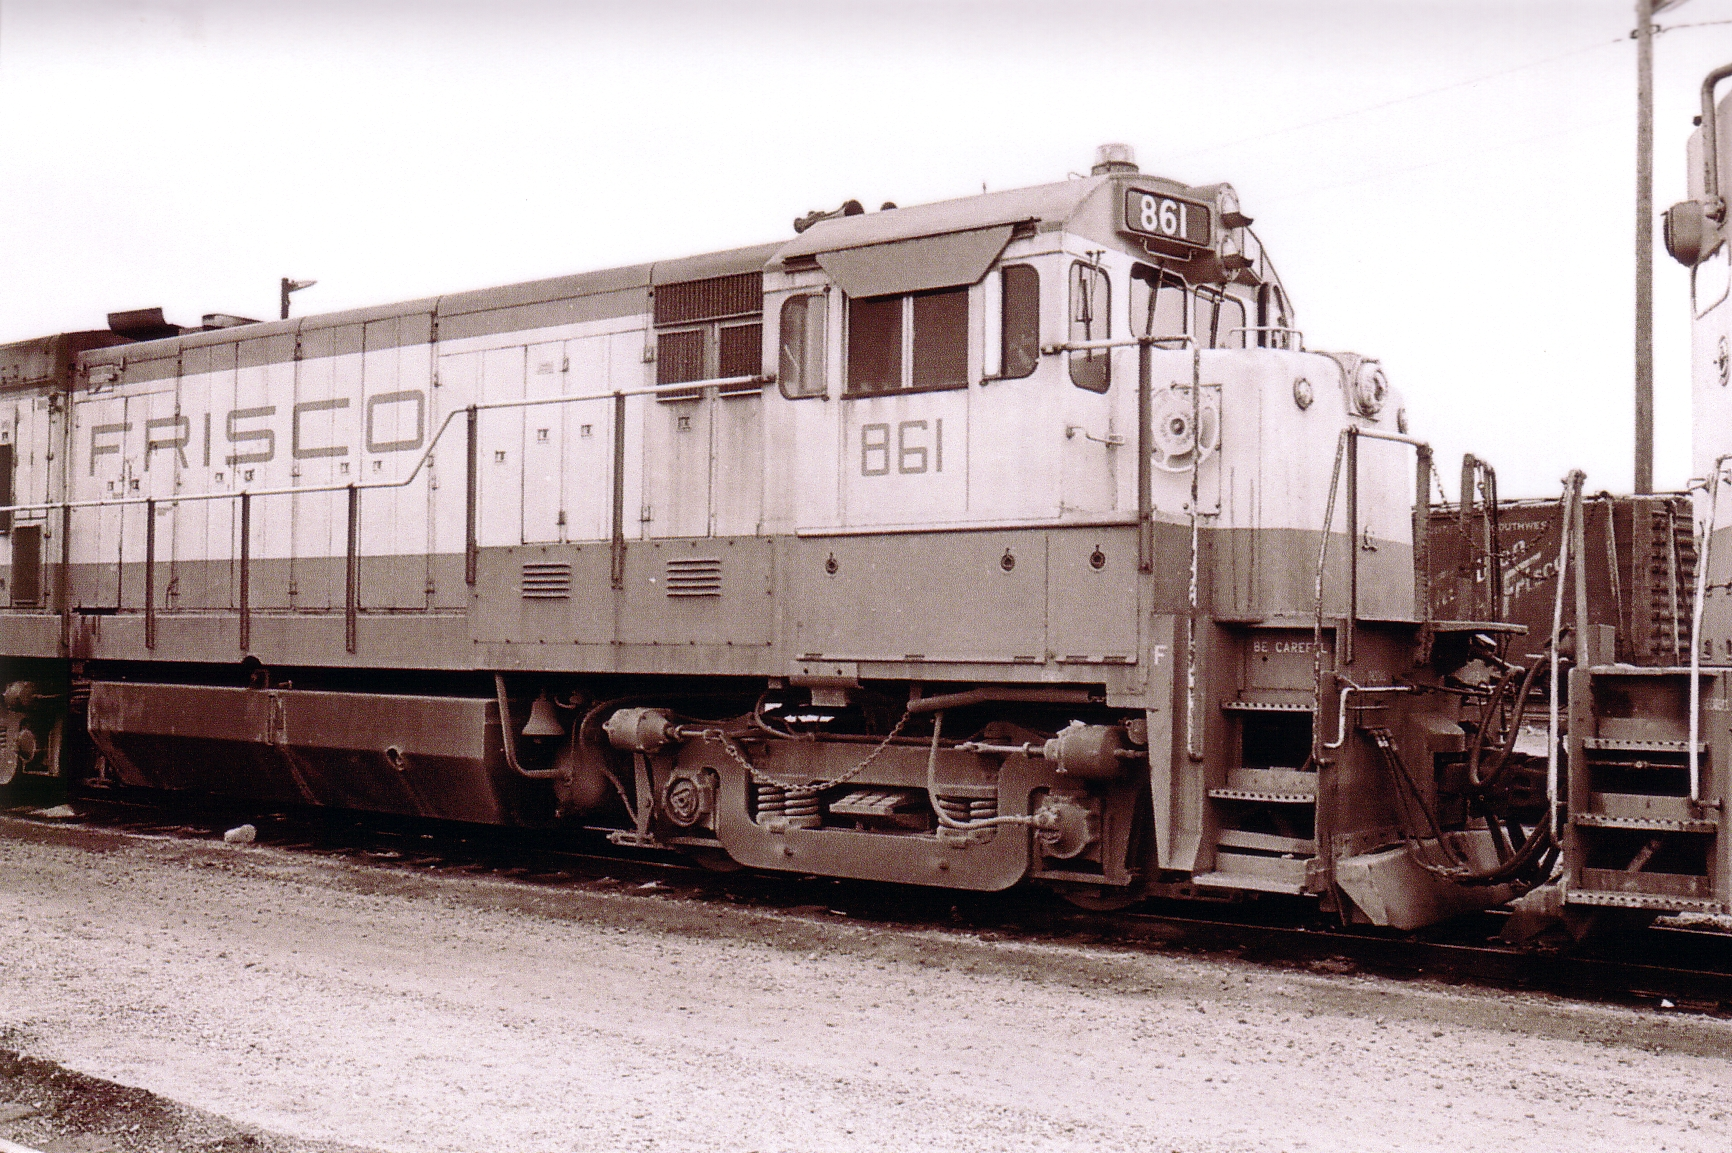 U30B 861 (date and location unknown)